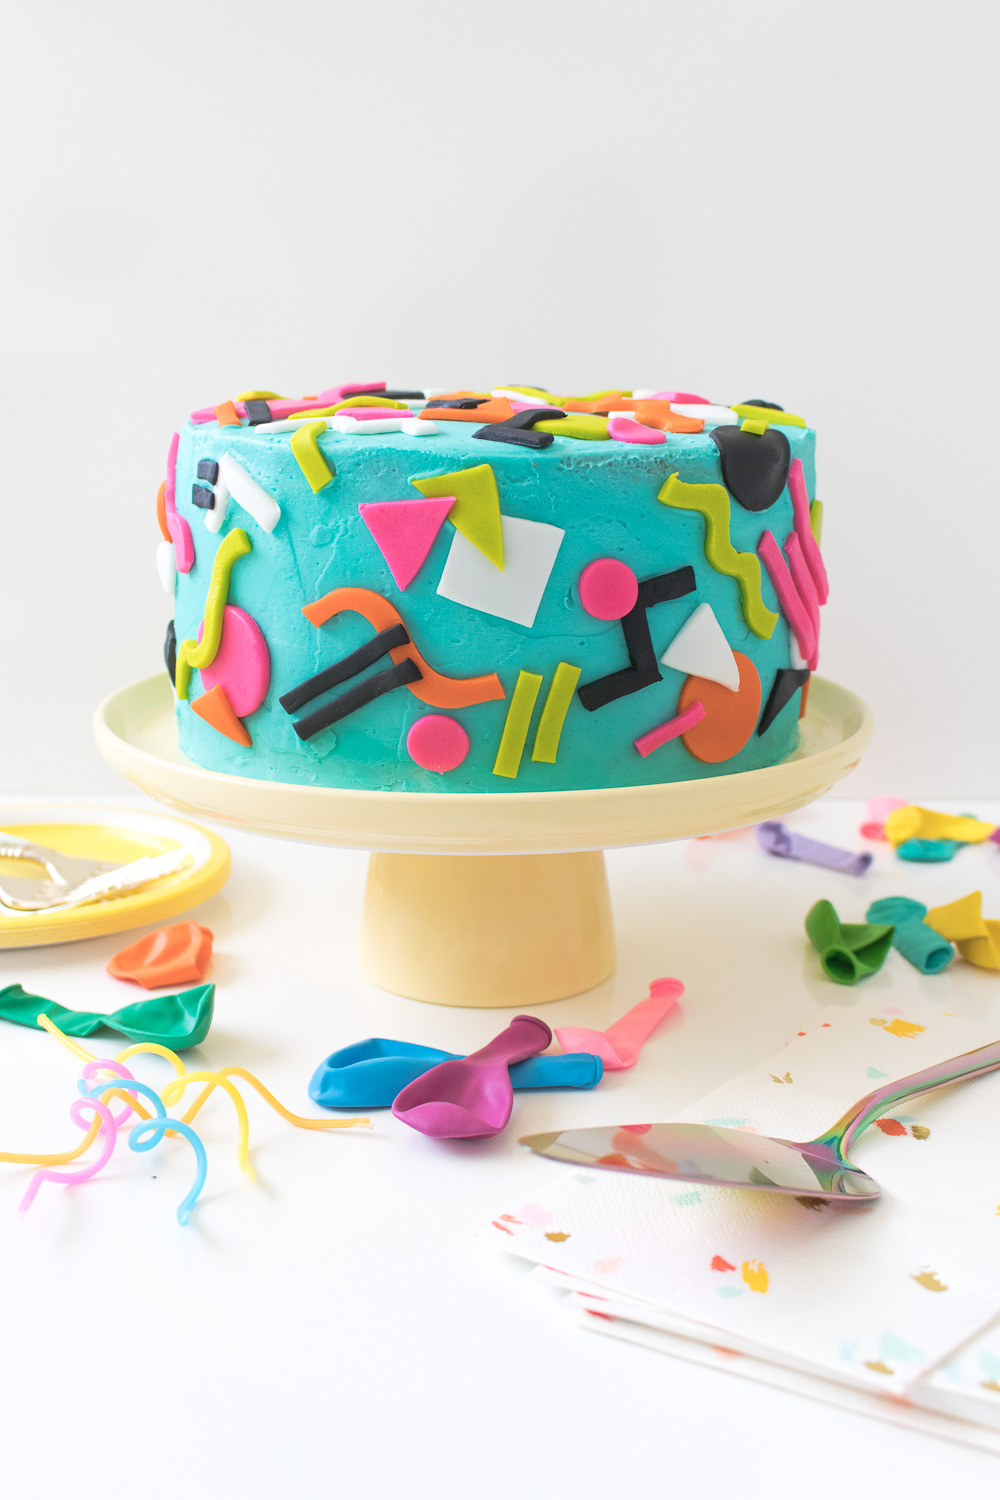 90s Throwback Layer Cake   Club Crafted